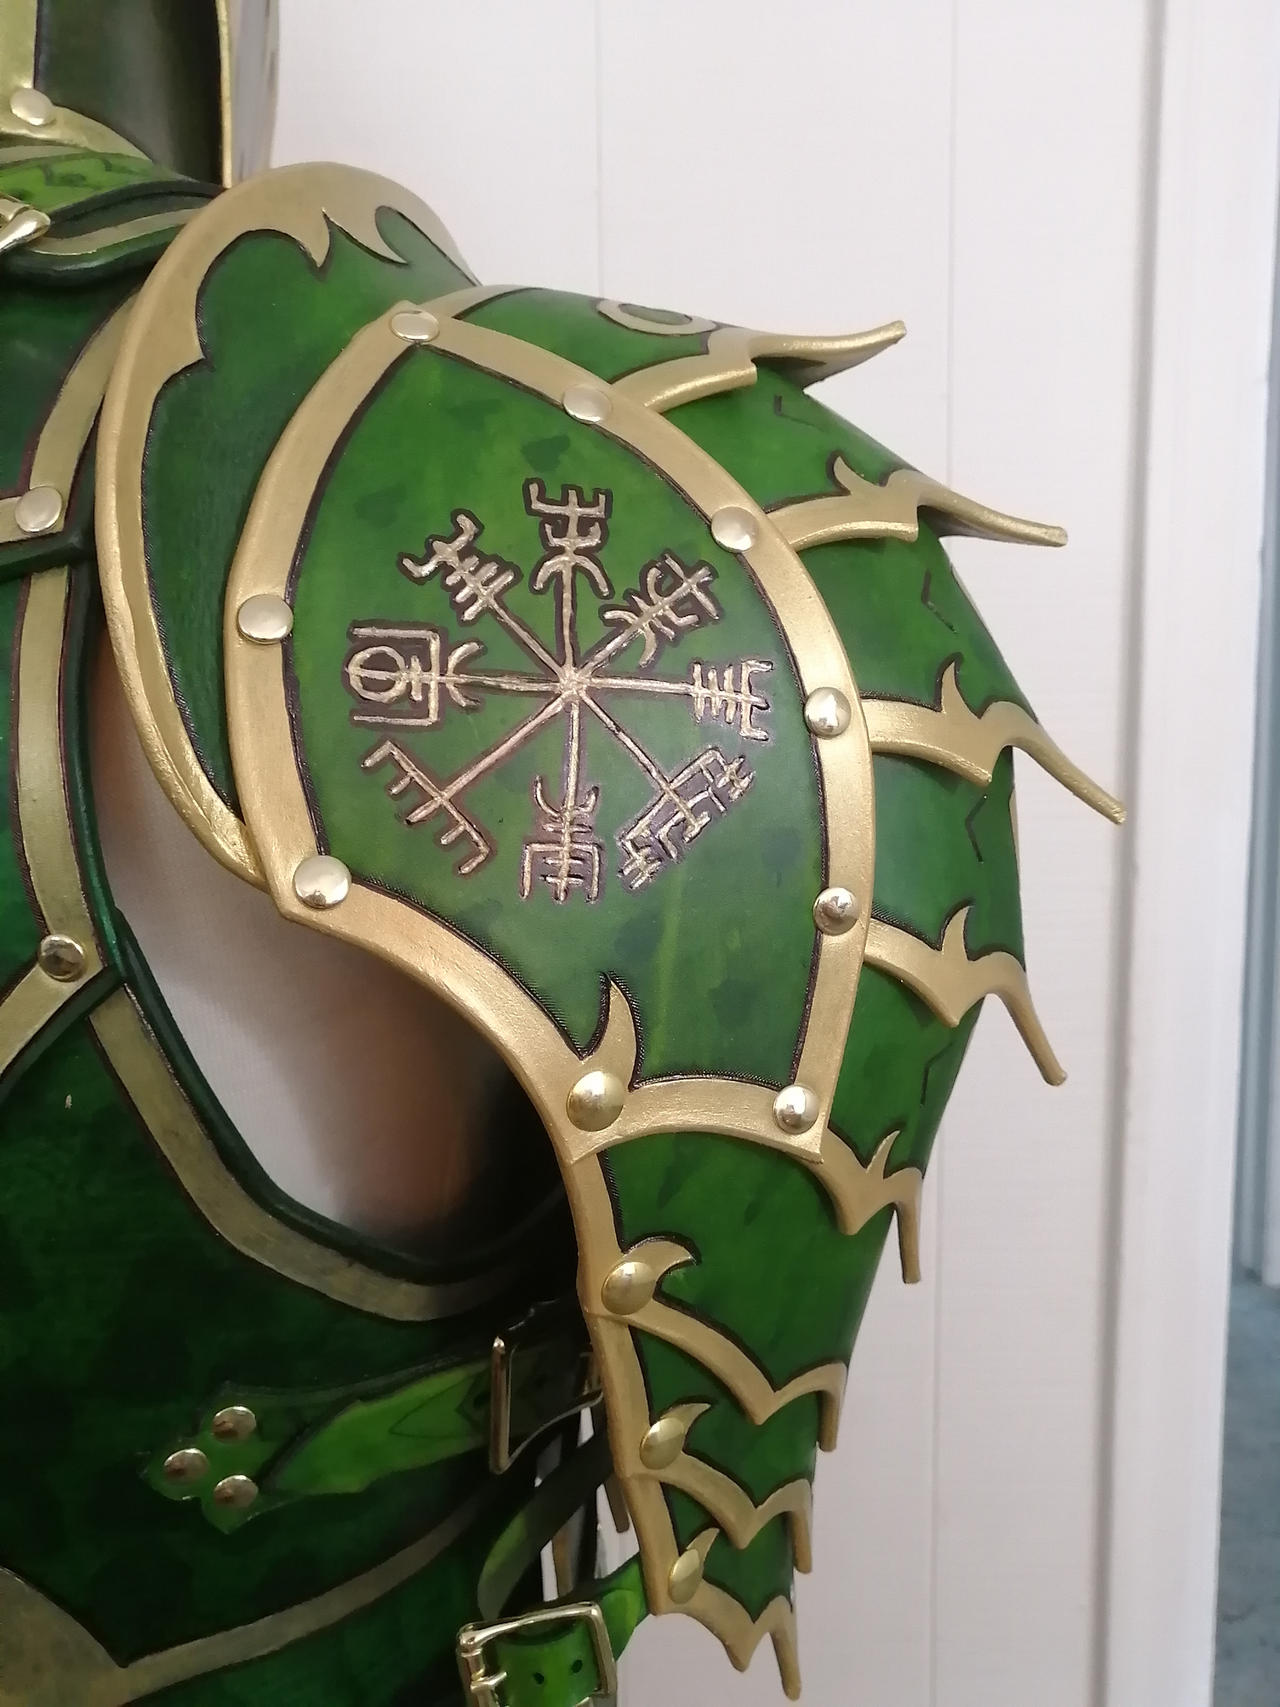 Green Dragon Armor Spaulders Back By Dragonlordvet On Deviantart With case, unopened box, limited edition, with stand. deviantart